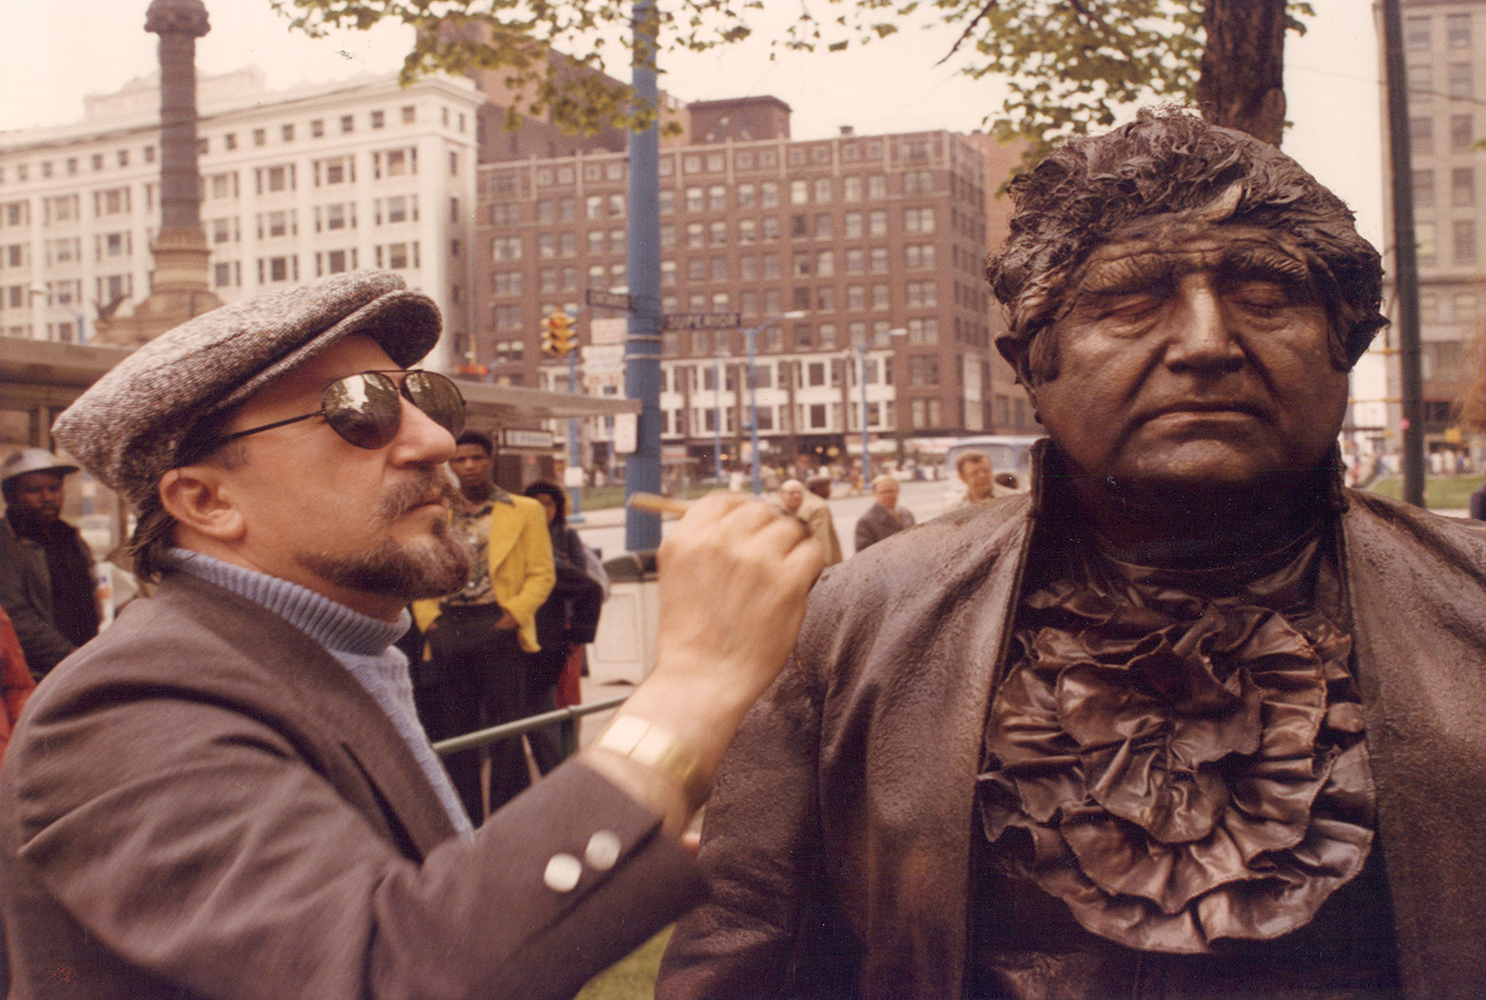 gmfilms cleveland moses statue makeup cleveland ohio